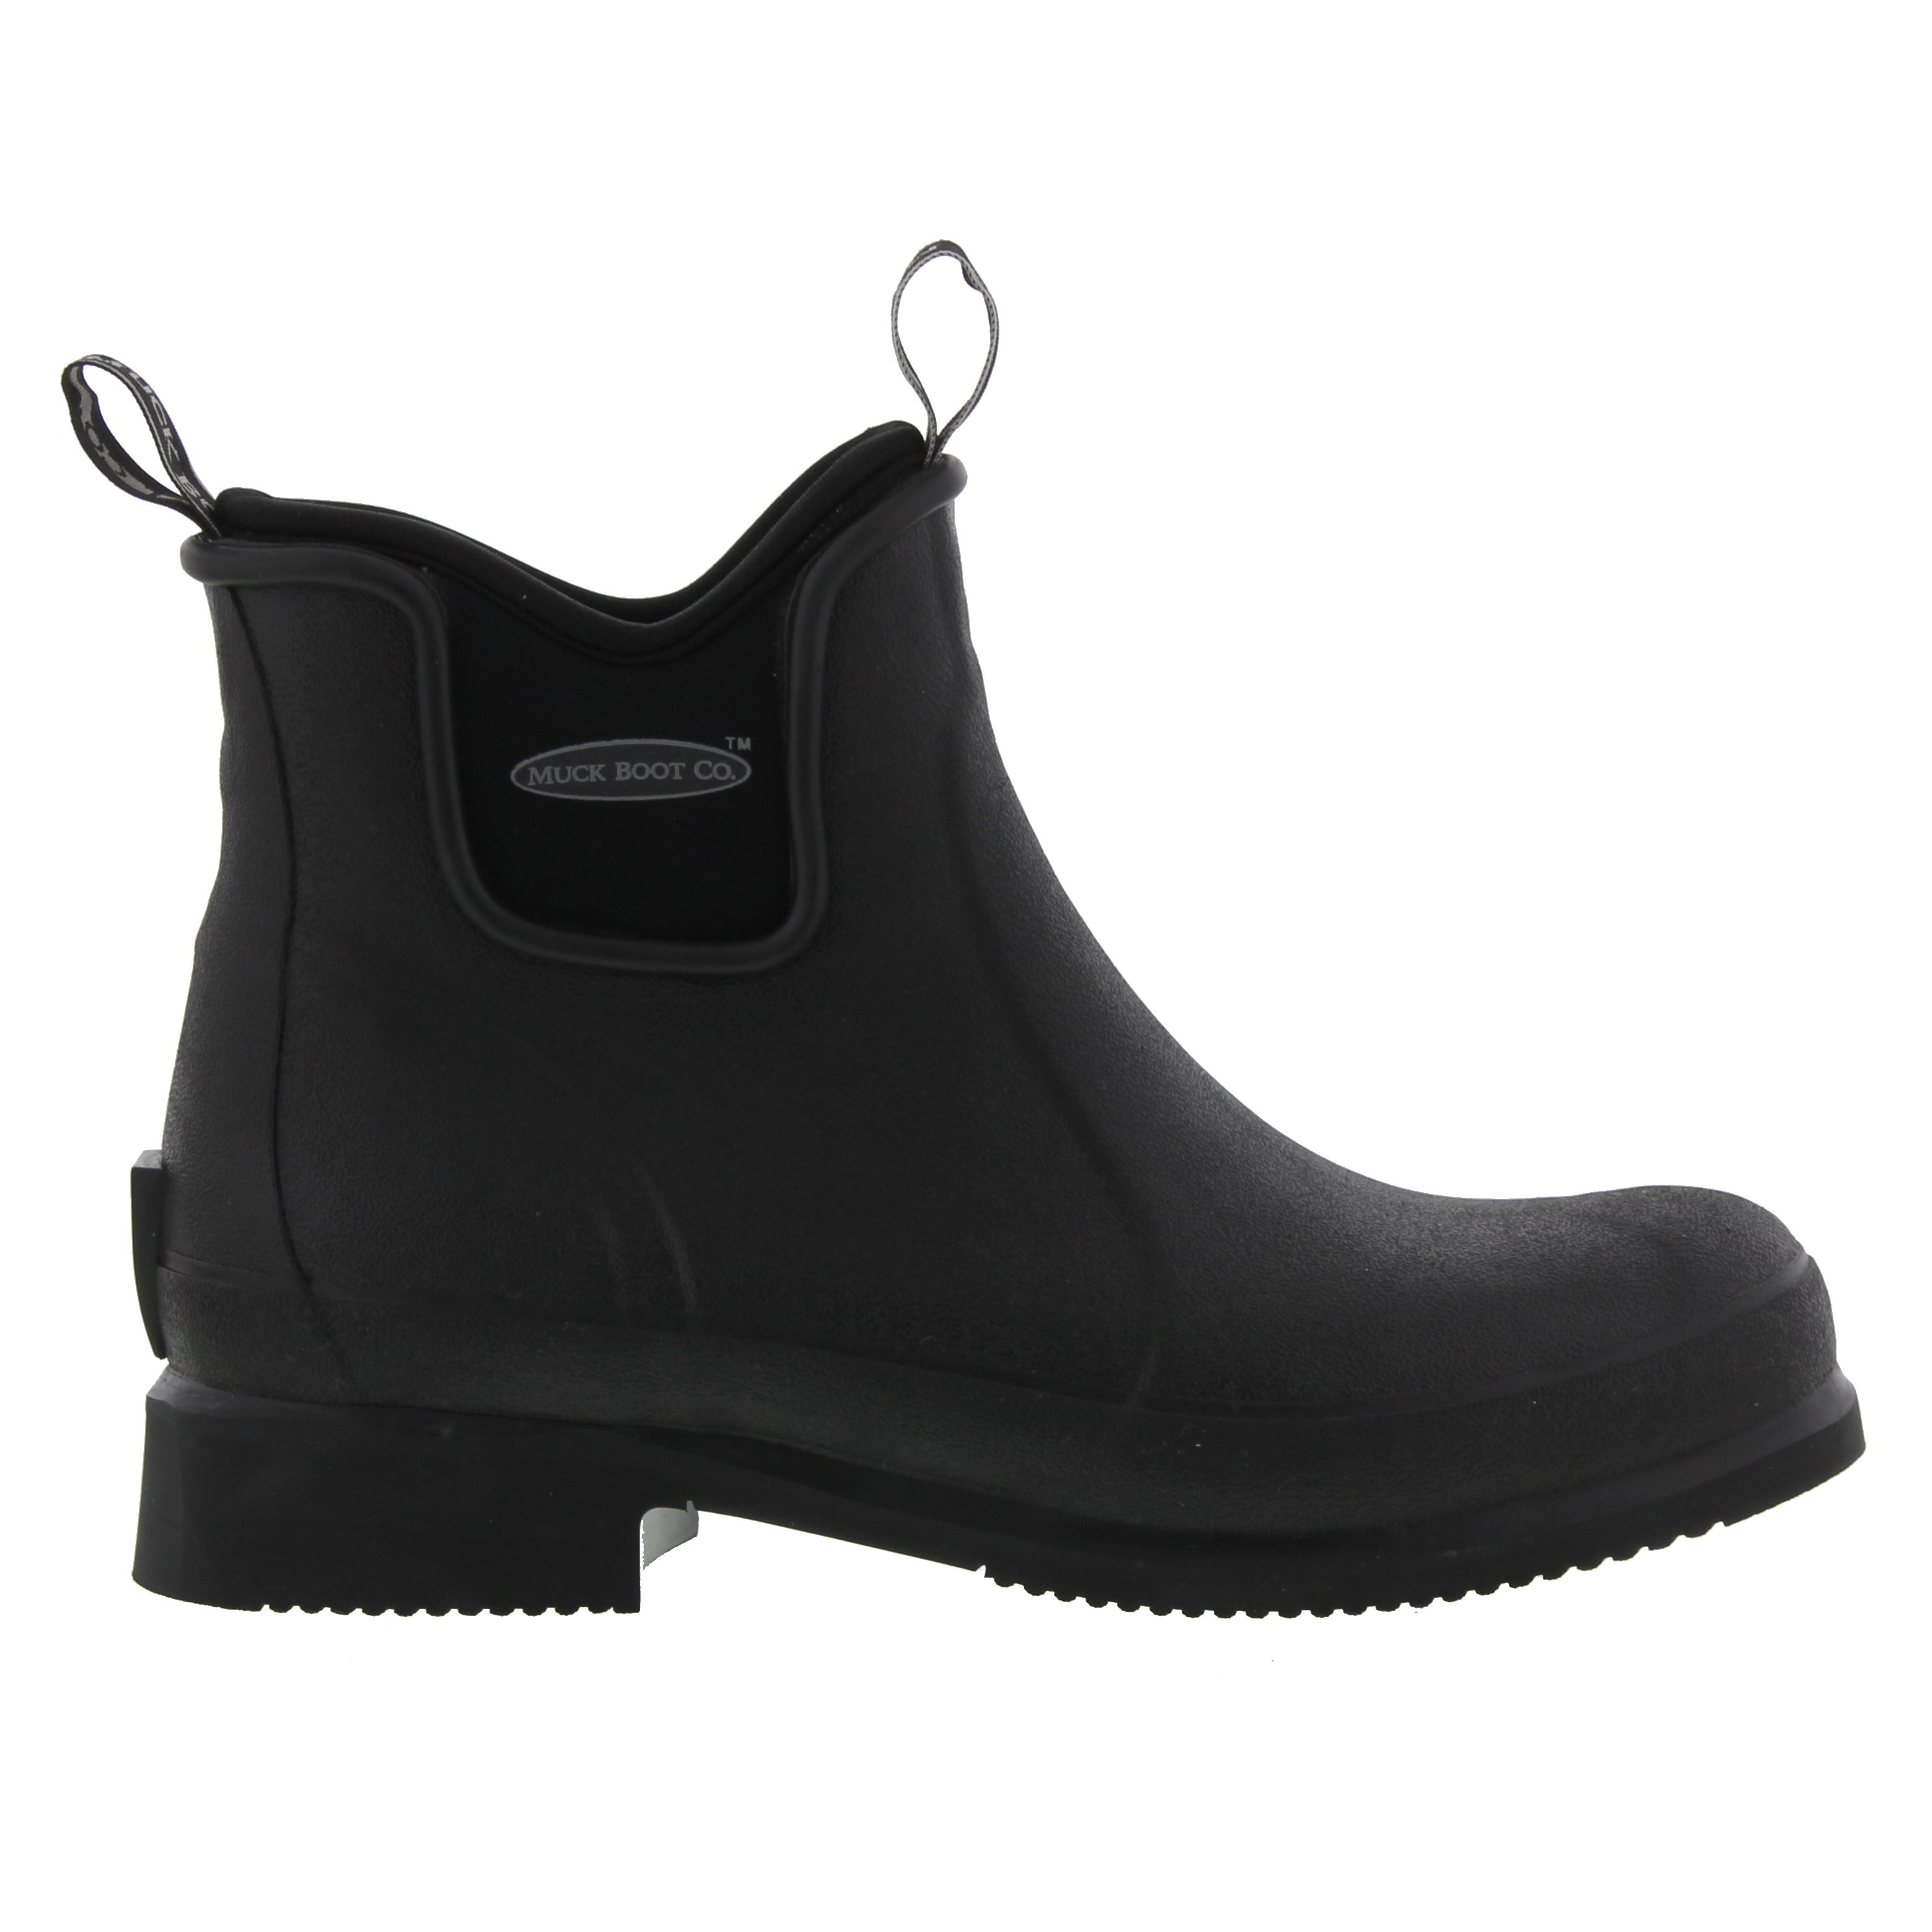 Muck Boots Wear Womens Short Ankle Wellington Yard Chelsea Boots ...